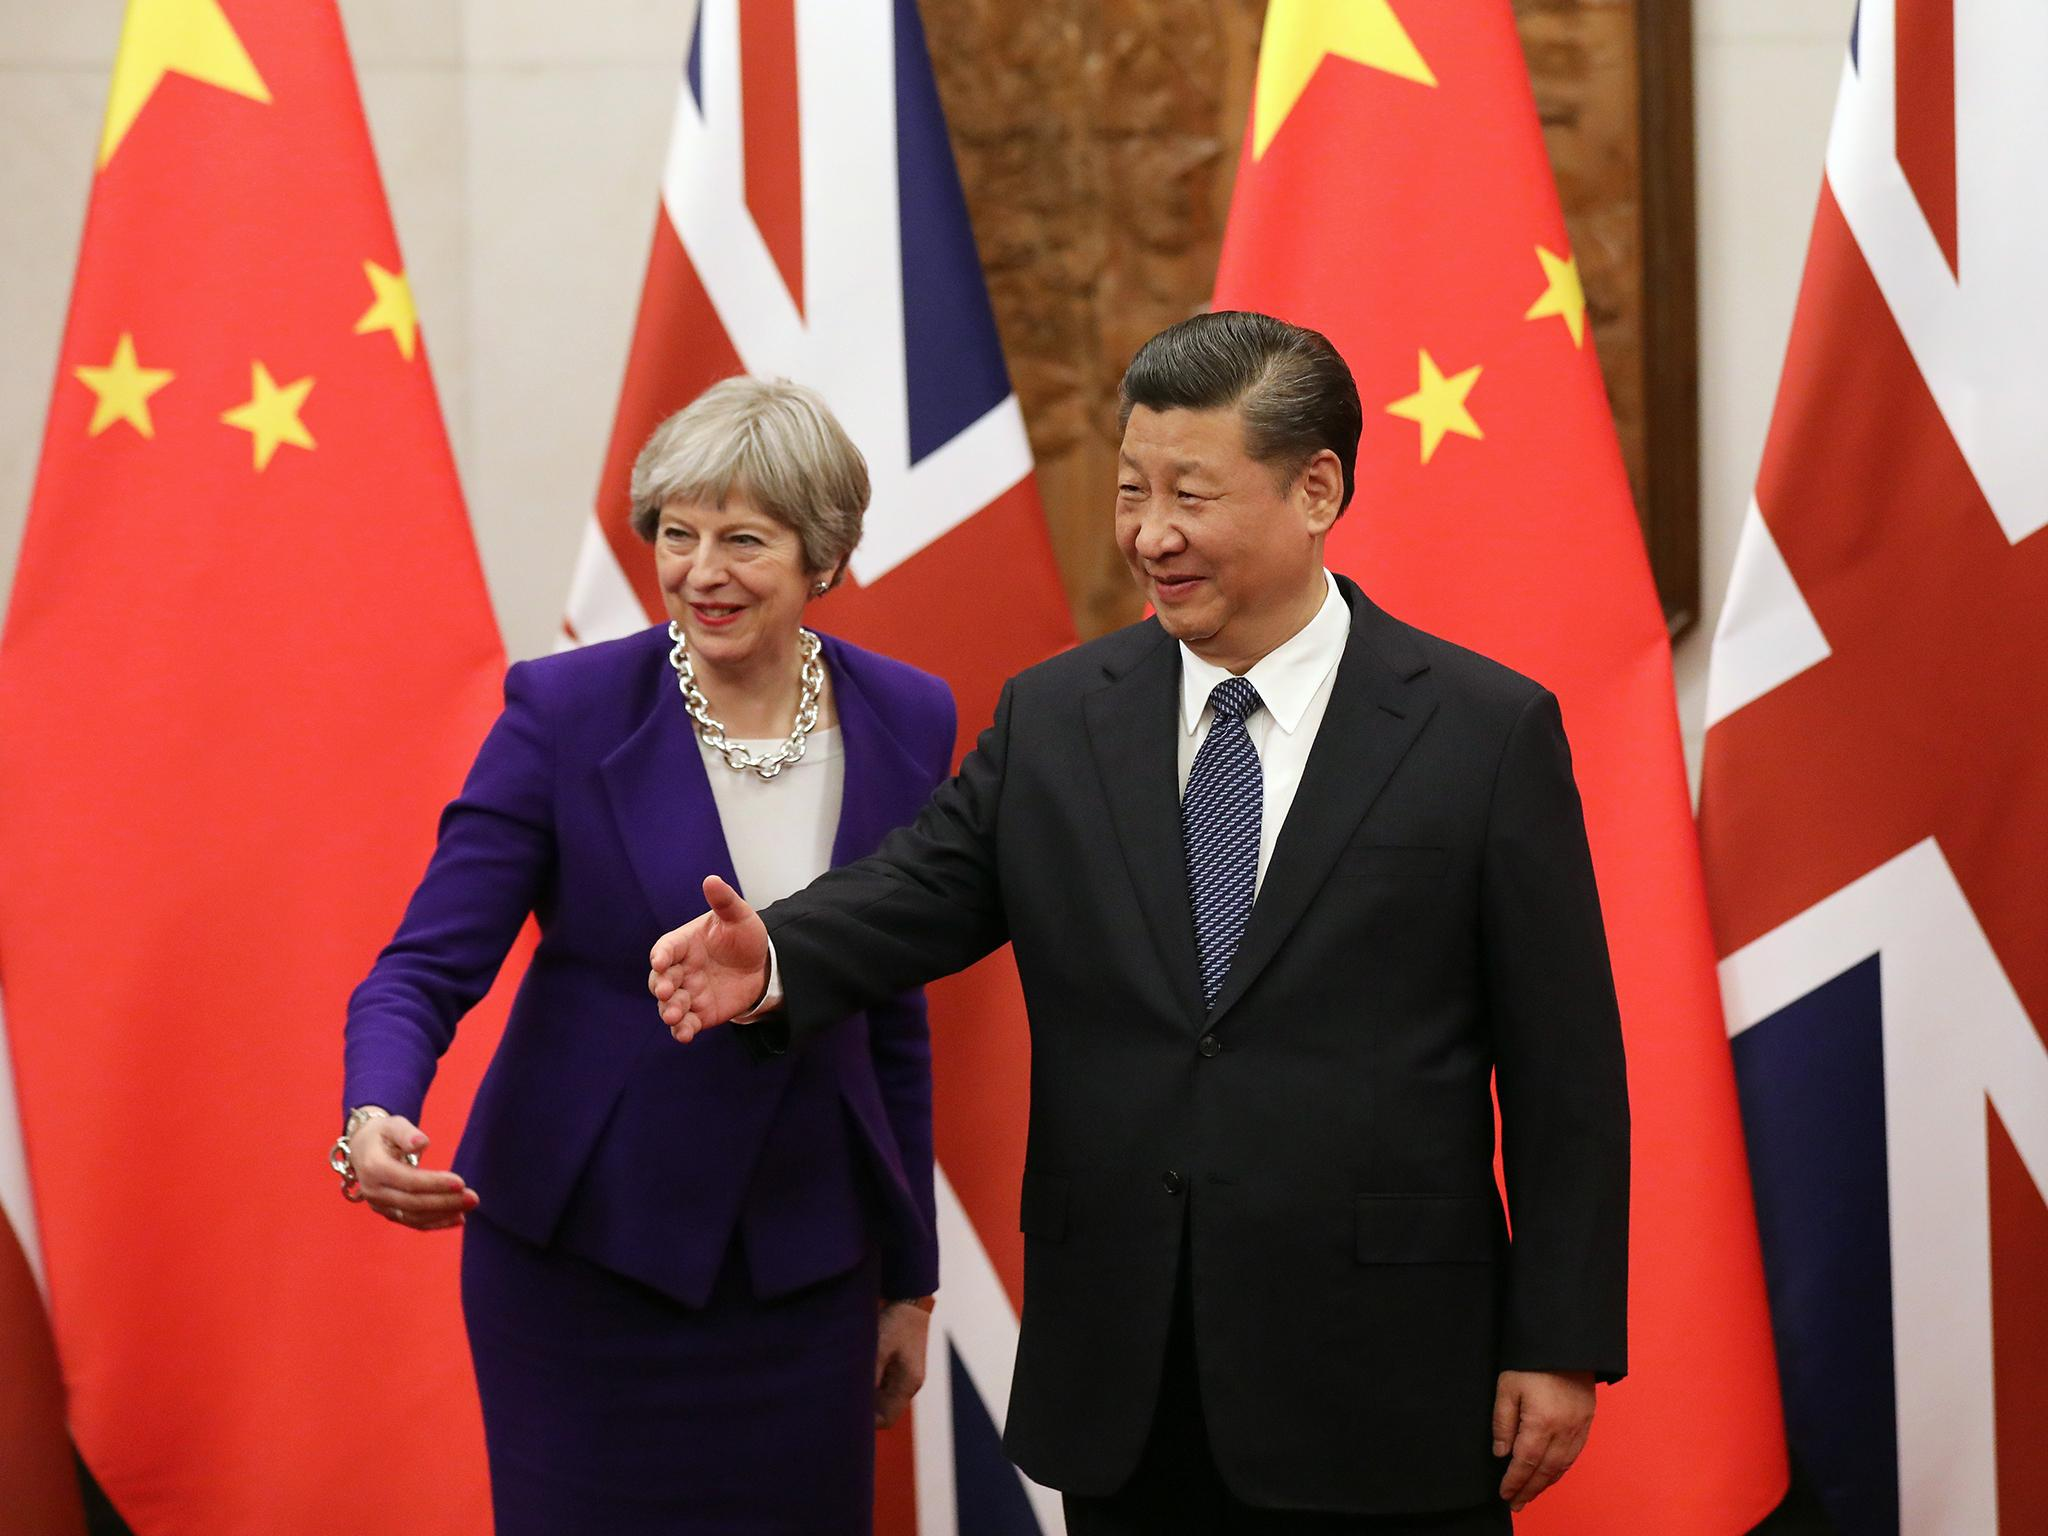 UK putting trade with China above security and human rights abuses